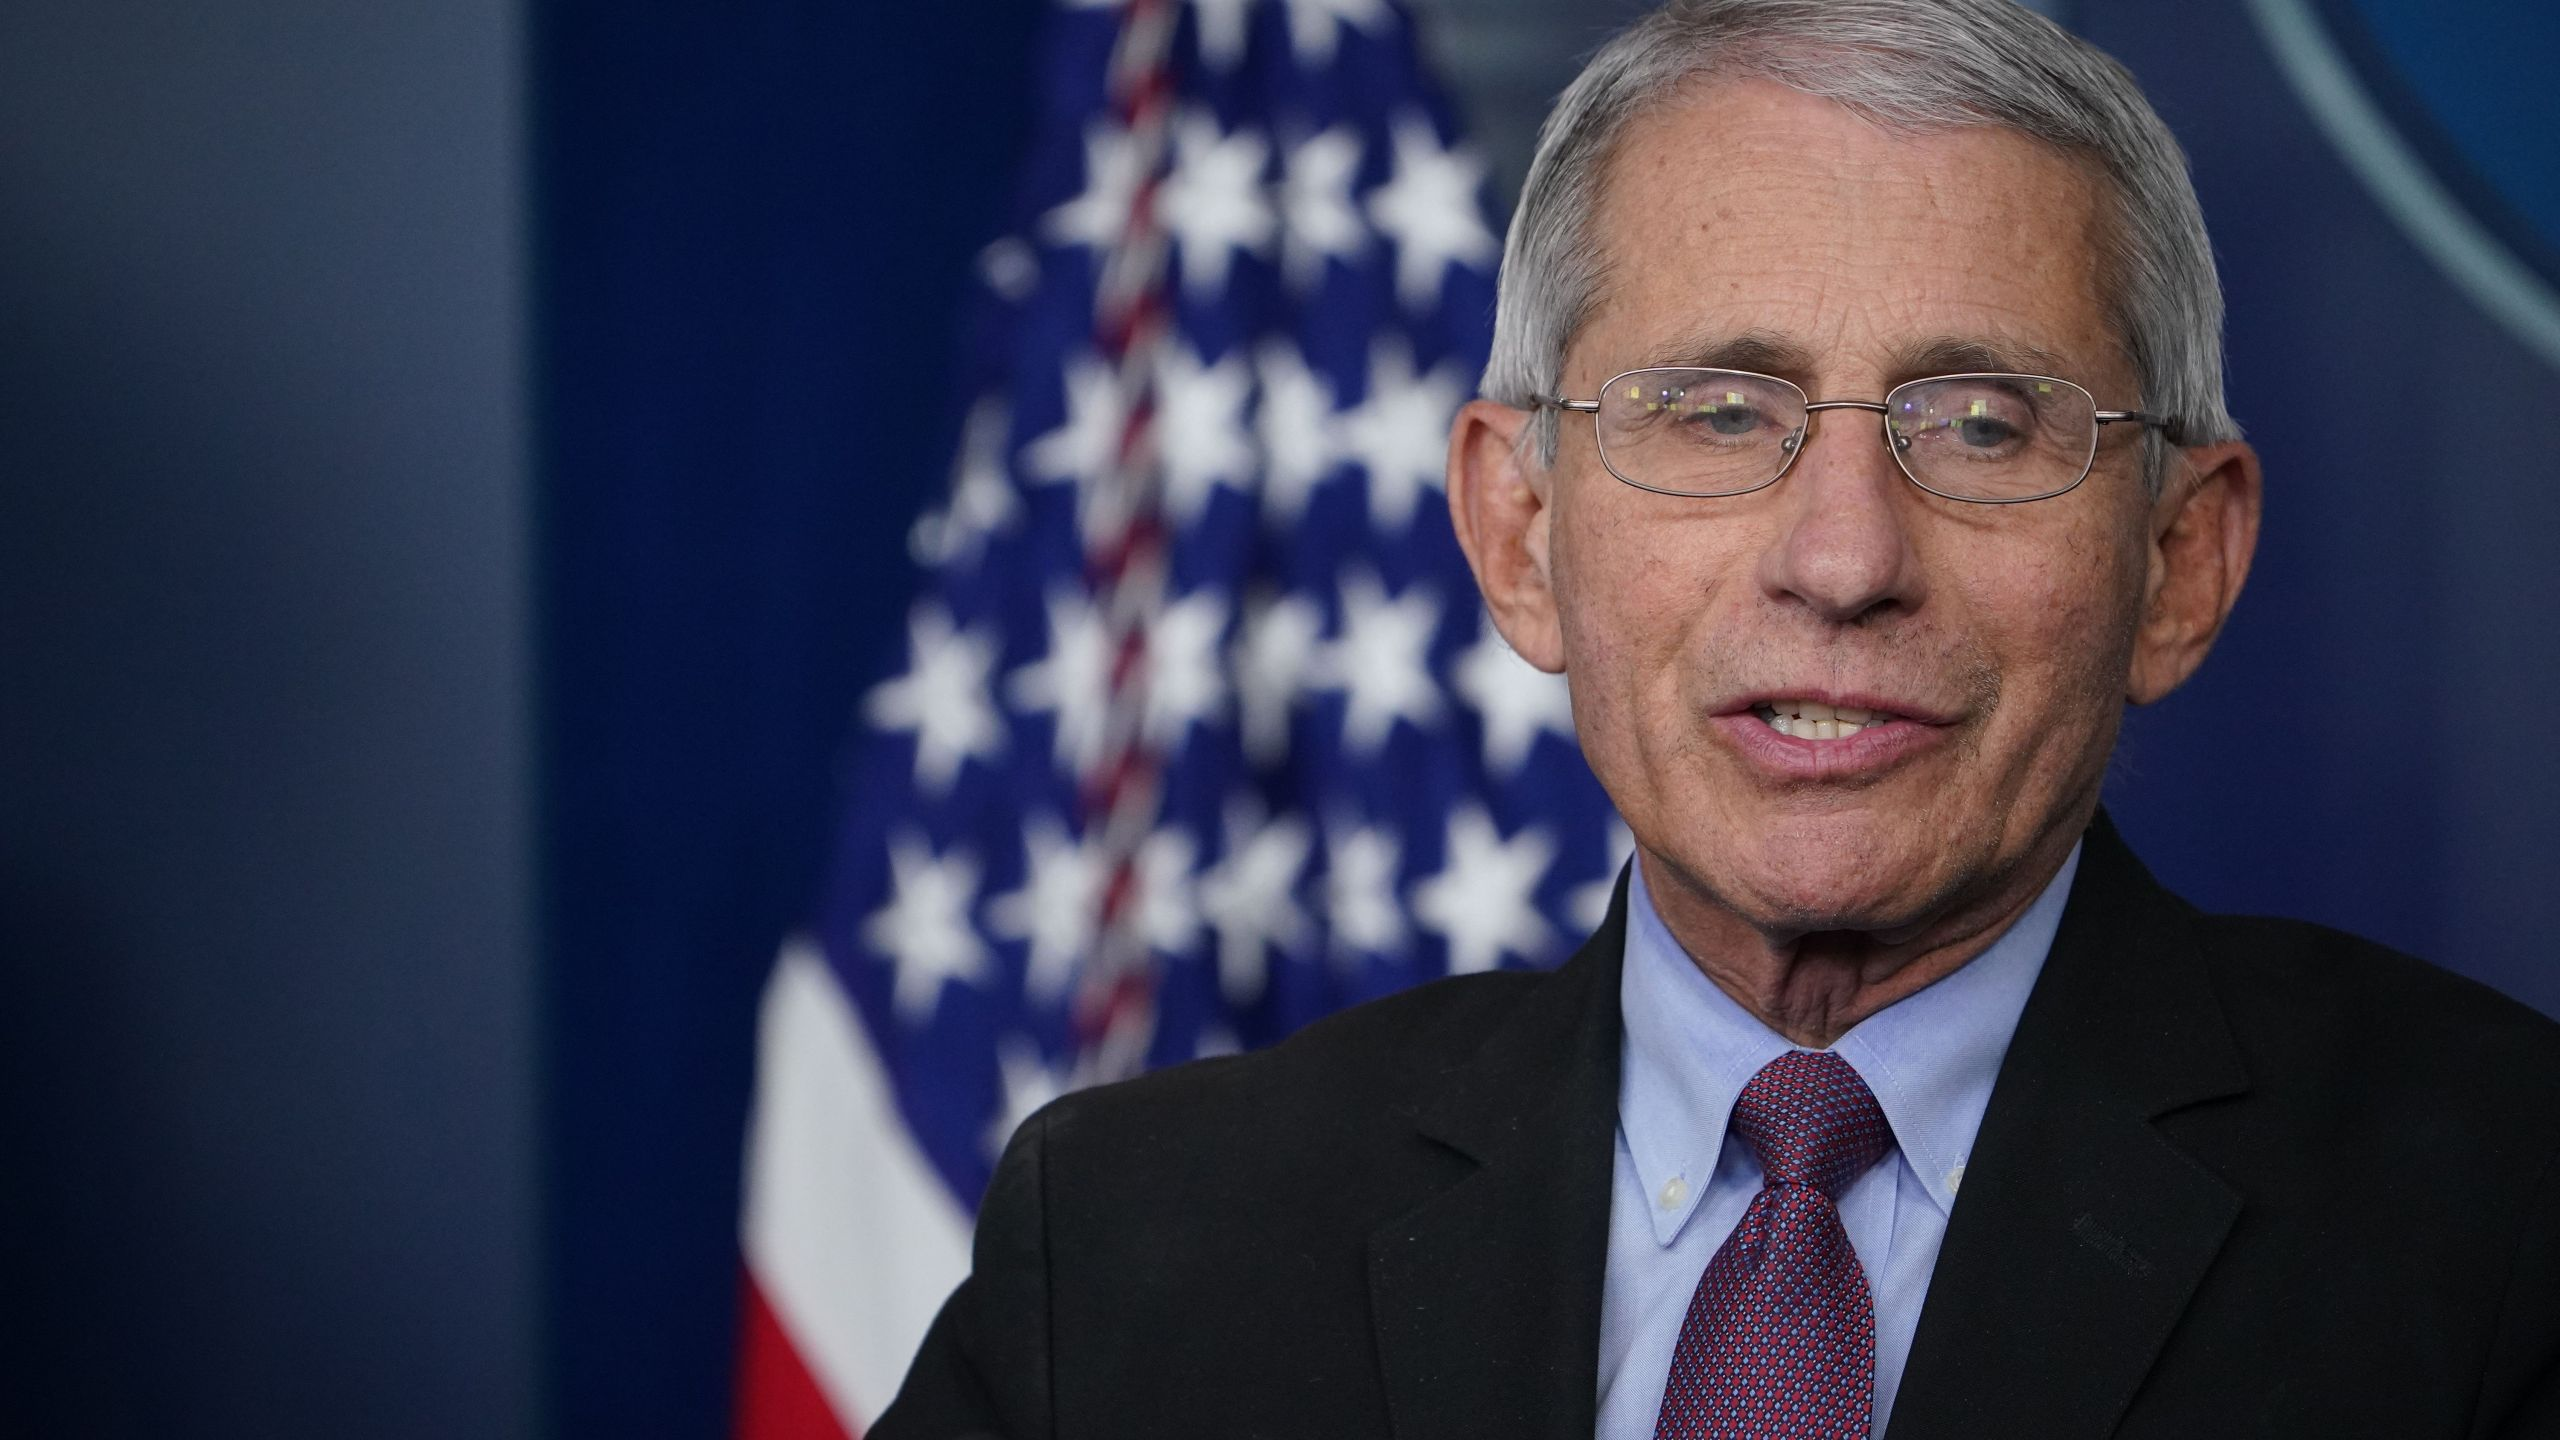 Director of the National Institute of Allergy and Infectious Diseases Anthony Fauci speaks during the daily briefing on the novel coronavirus, which causes COVID-19, in the Brady Briefing Room of the White House on April 22, 2020, in Washington, DC. (MANDEL NGAN/AFP via Getty Images)